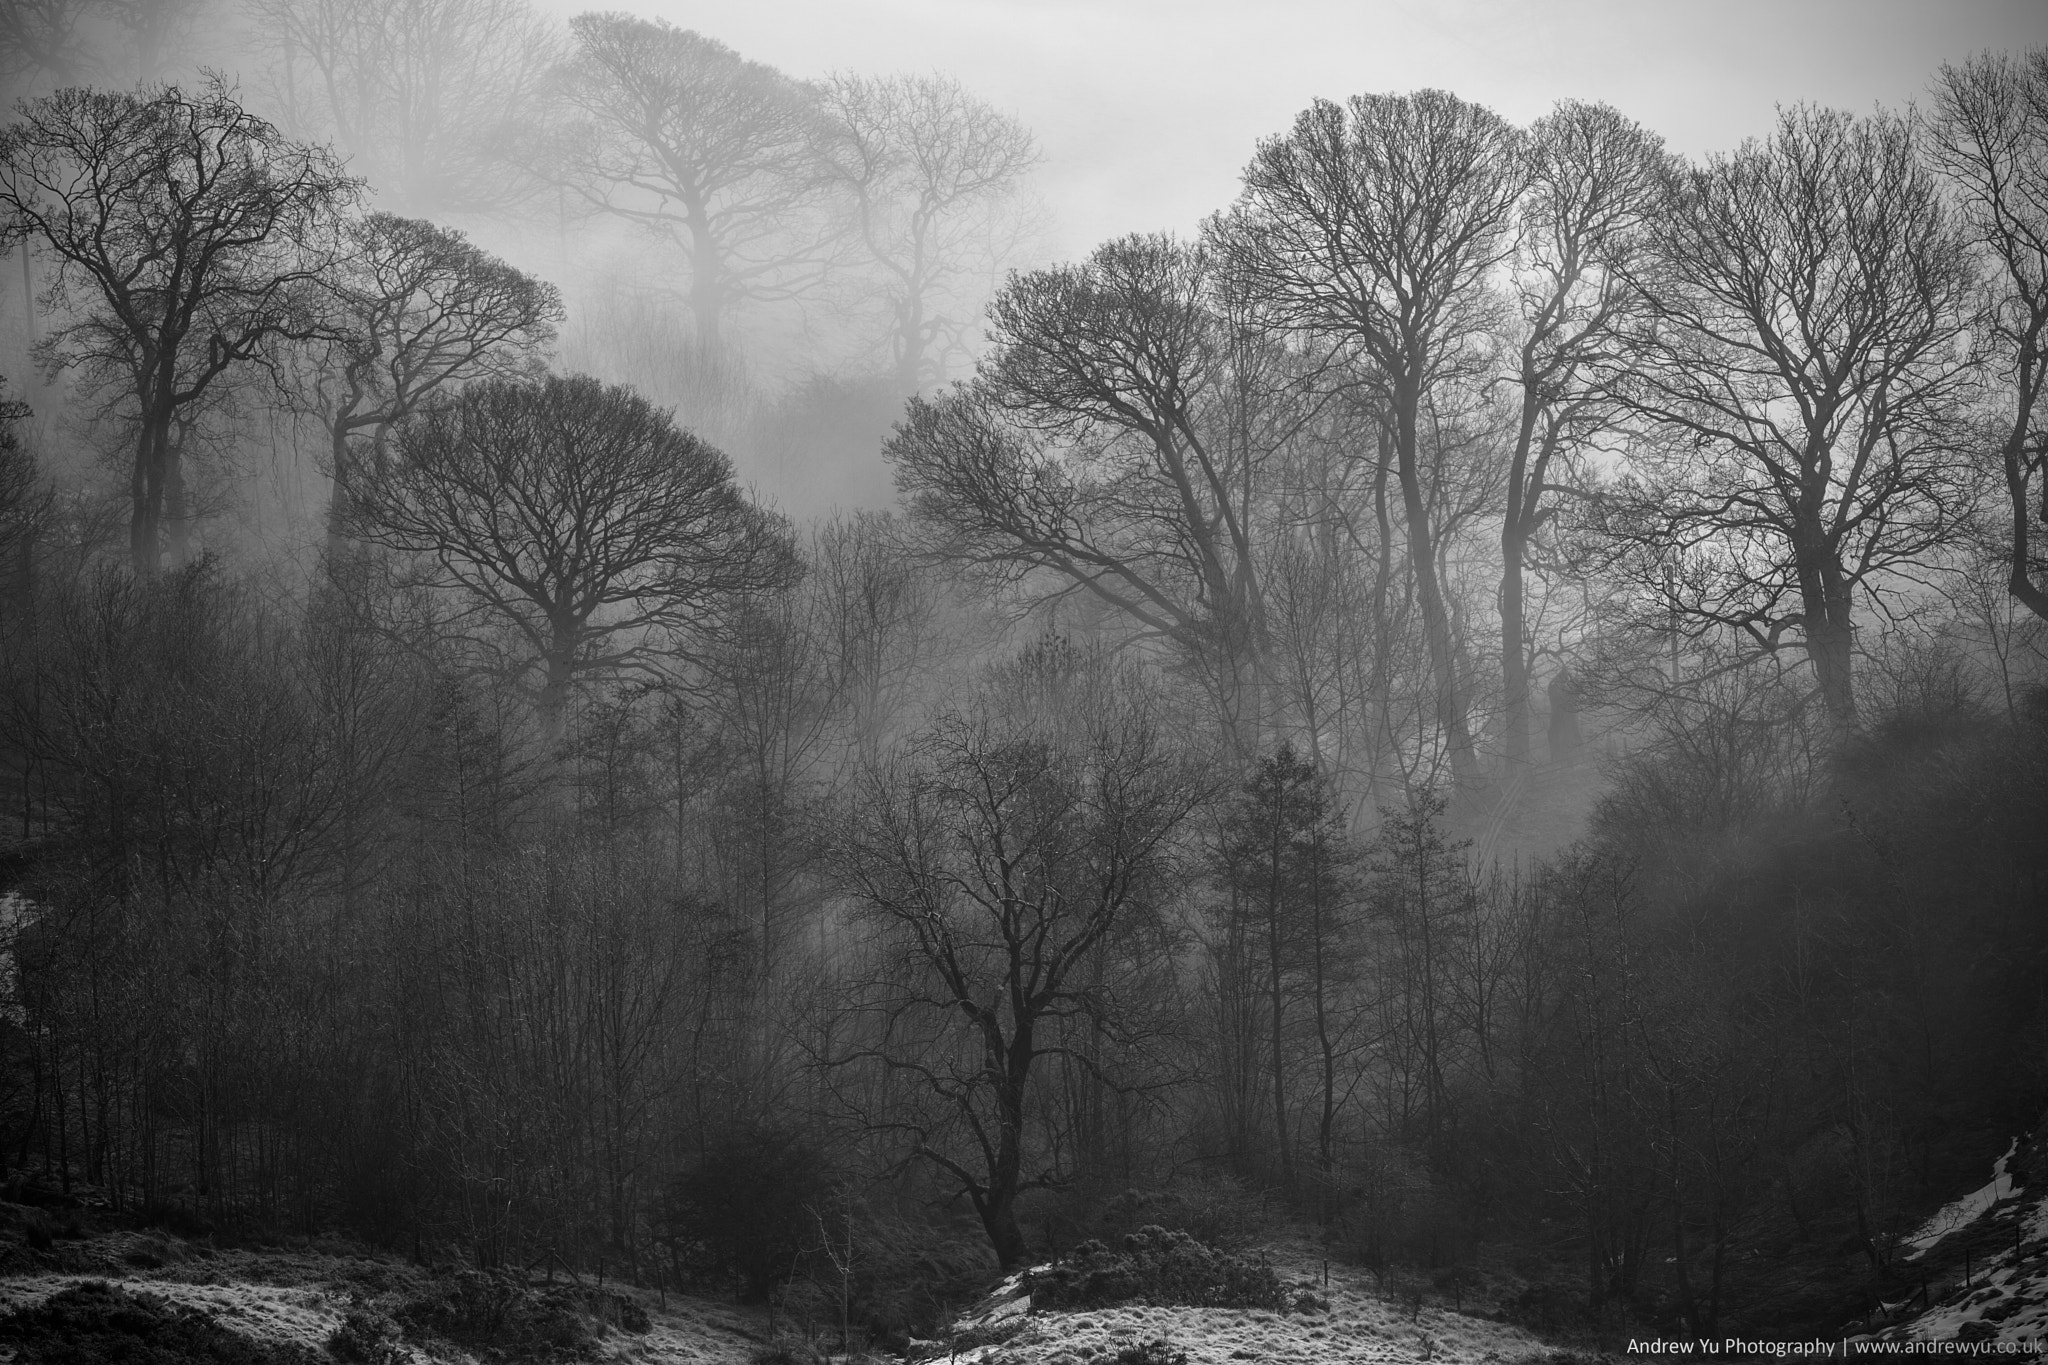 Photograph Misty Trees by Andrew Yu on 500px